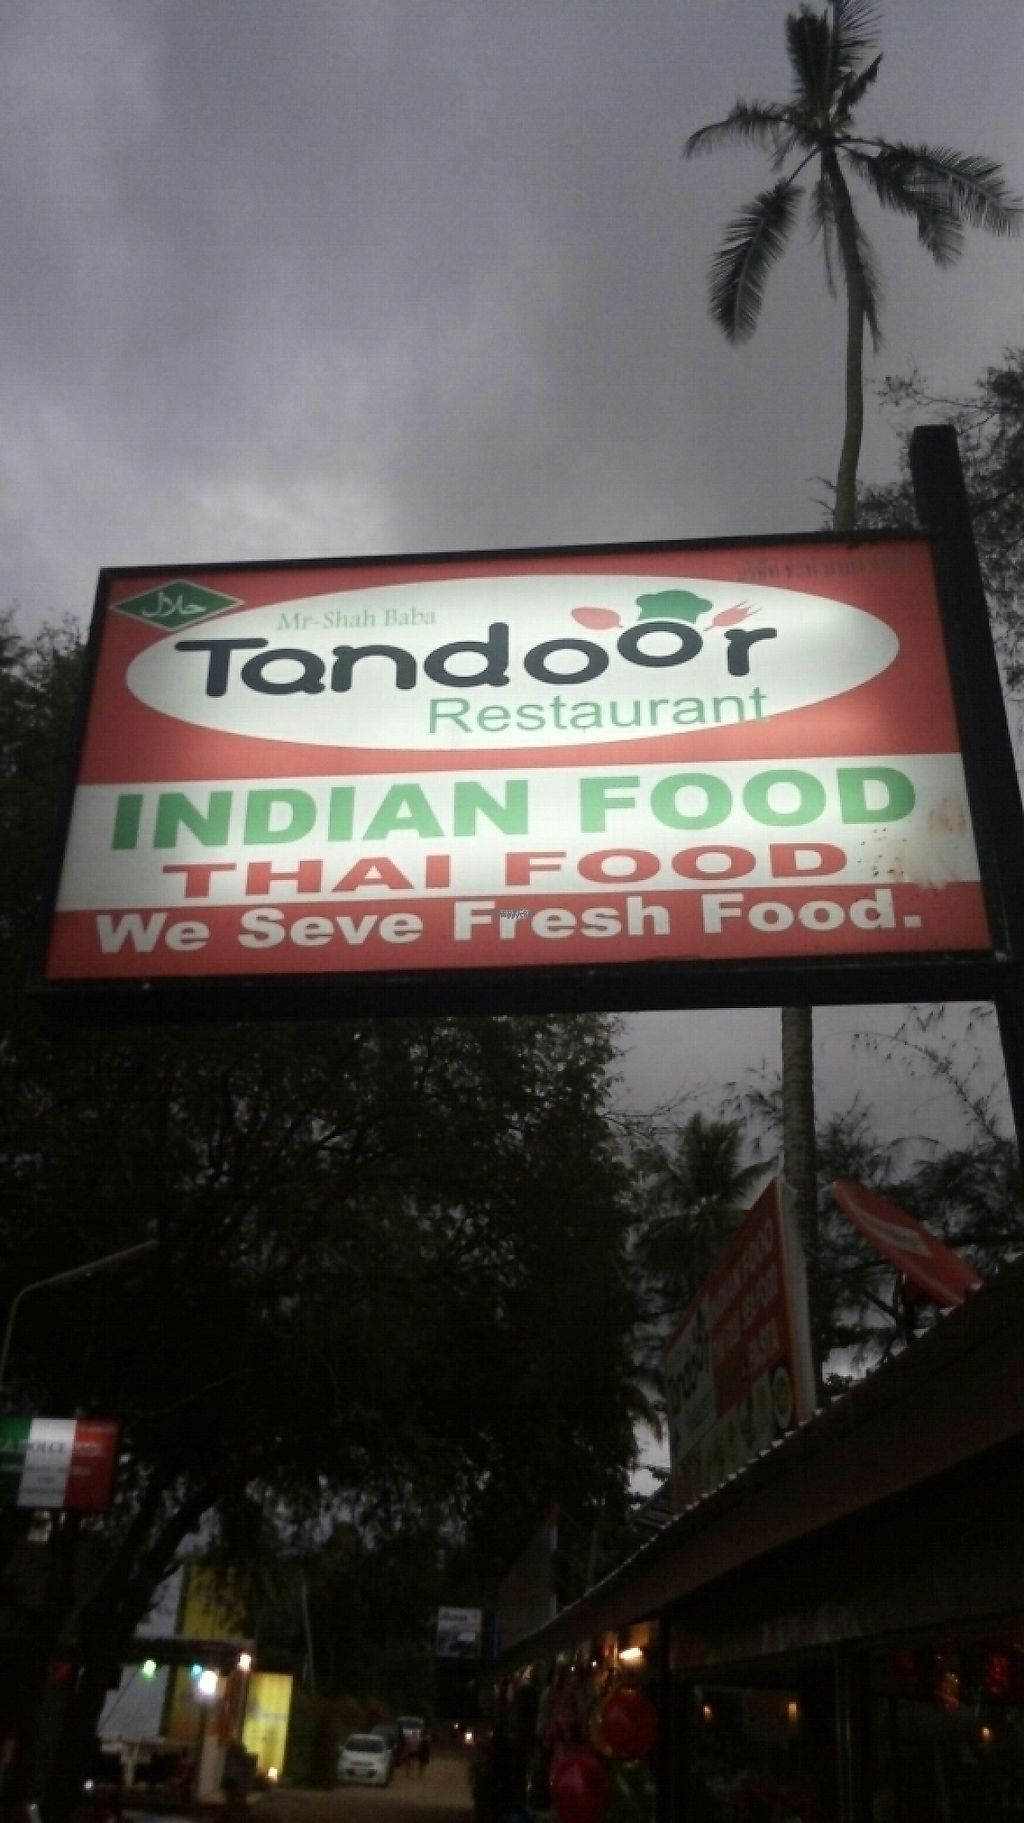 "Photo of Shahbaba Indian Restaurant  by <a href=""/members/profile/TaaviKasemagi"">TaaviKasemagi</a> <br/>restaurant sign on walking street <br/> January 26, 2017  - <a href='/contact/abuse/image/72079/217192'>Report</a>"